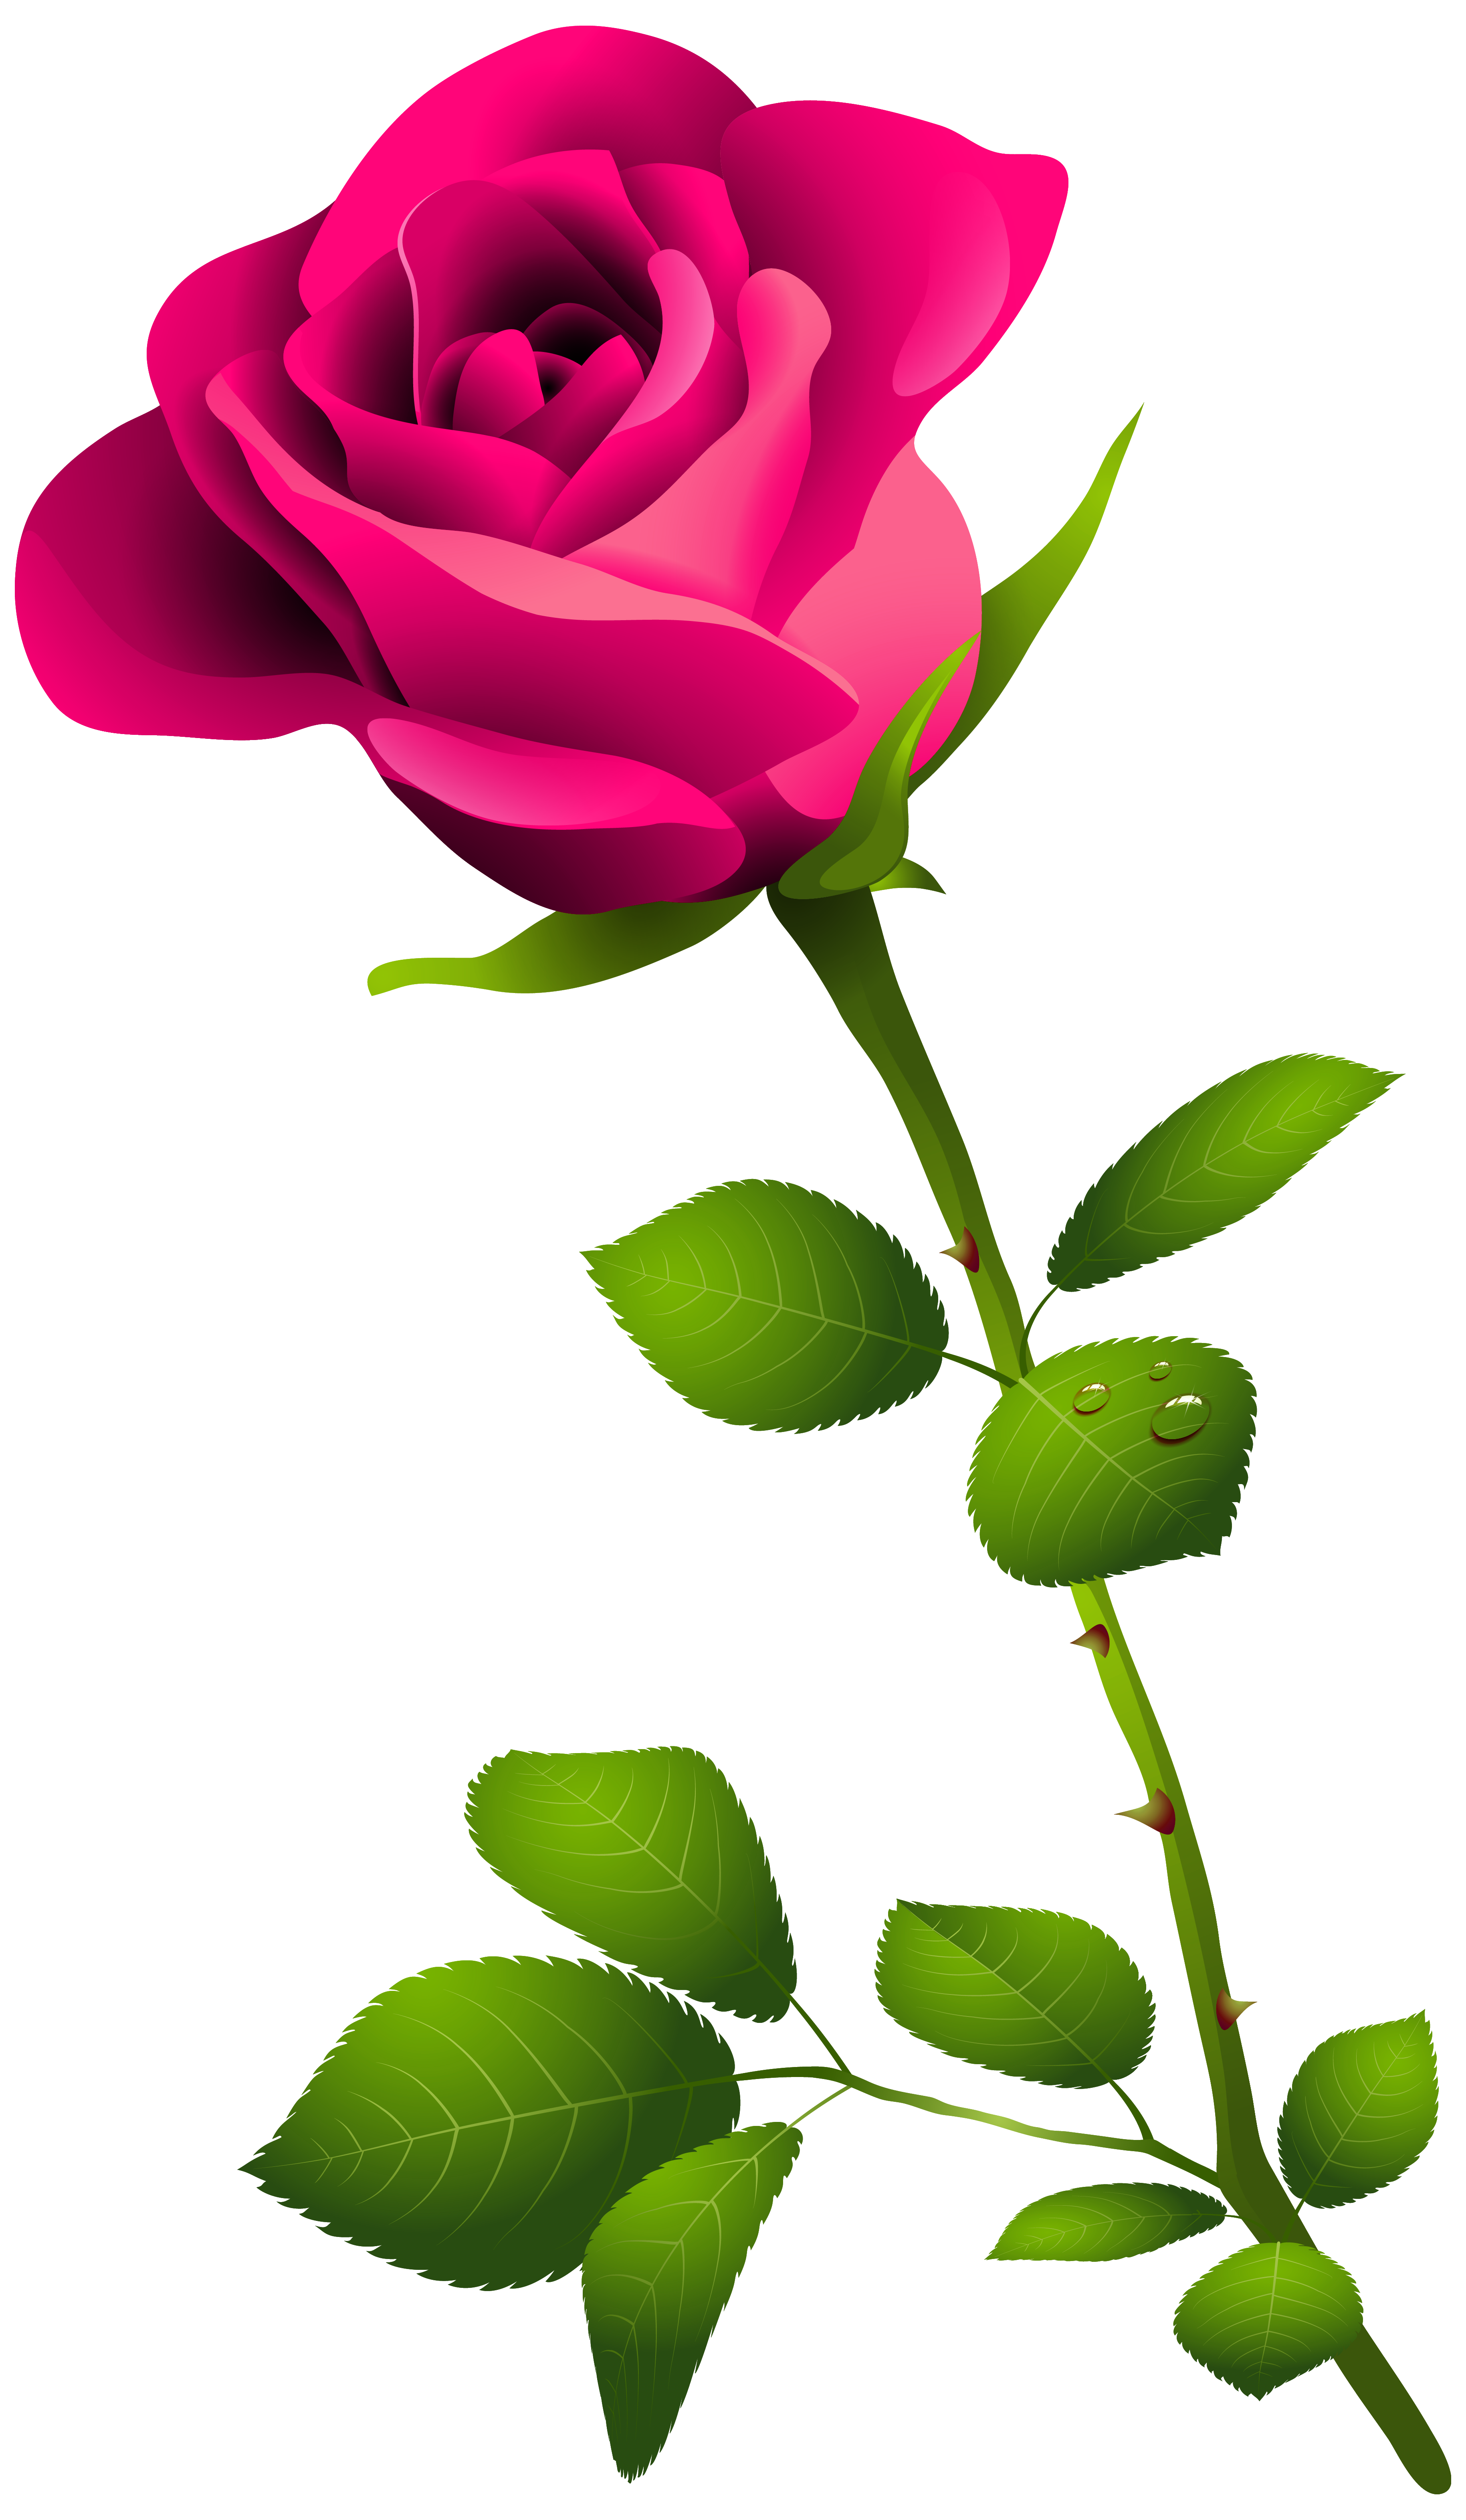 Pink flower with stem clipart image black and white download Pink Rose with Stem PNG Clipart Image | Gallery Yopriceville - High ... image black and white download